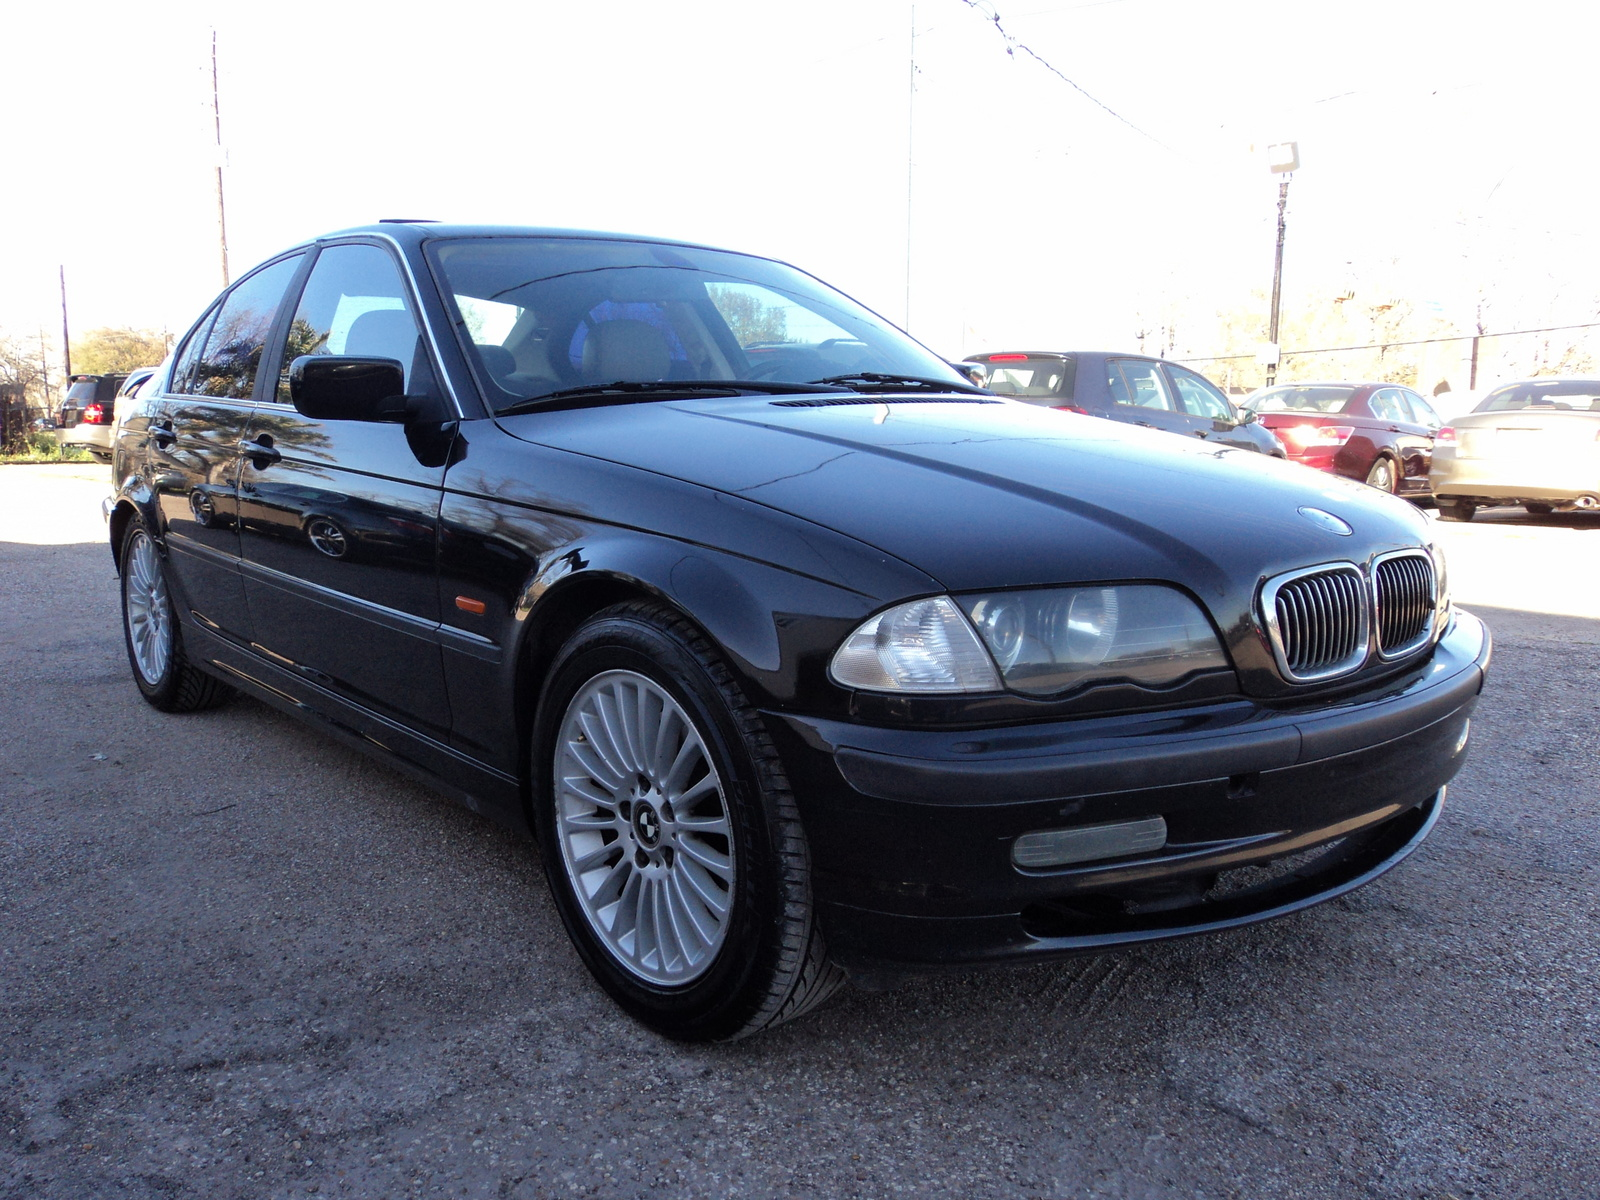 BMW 3 series 323i 2001 photo - 2